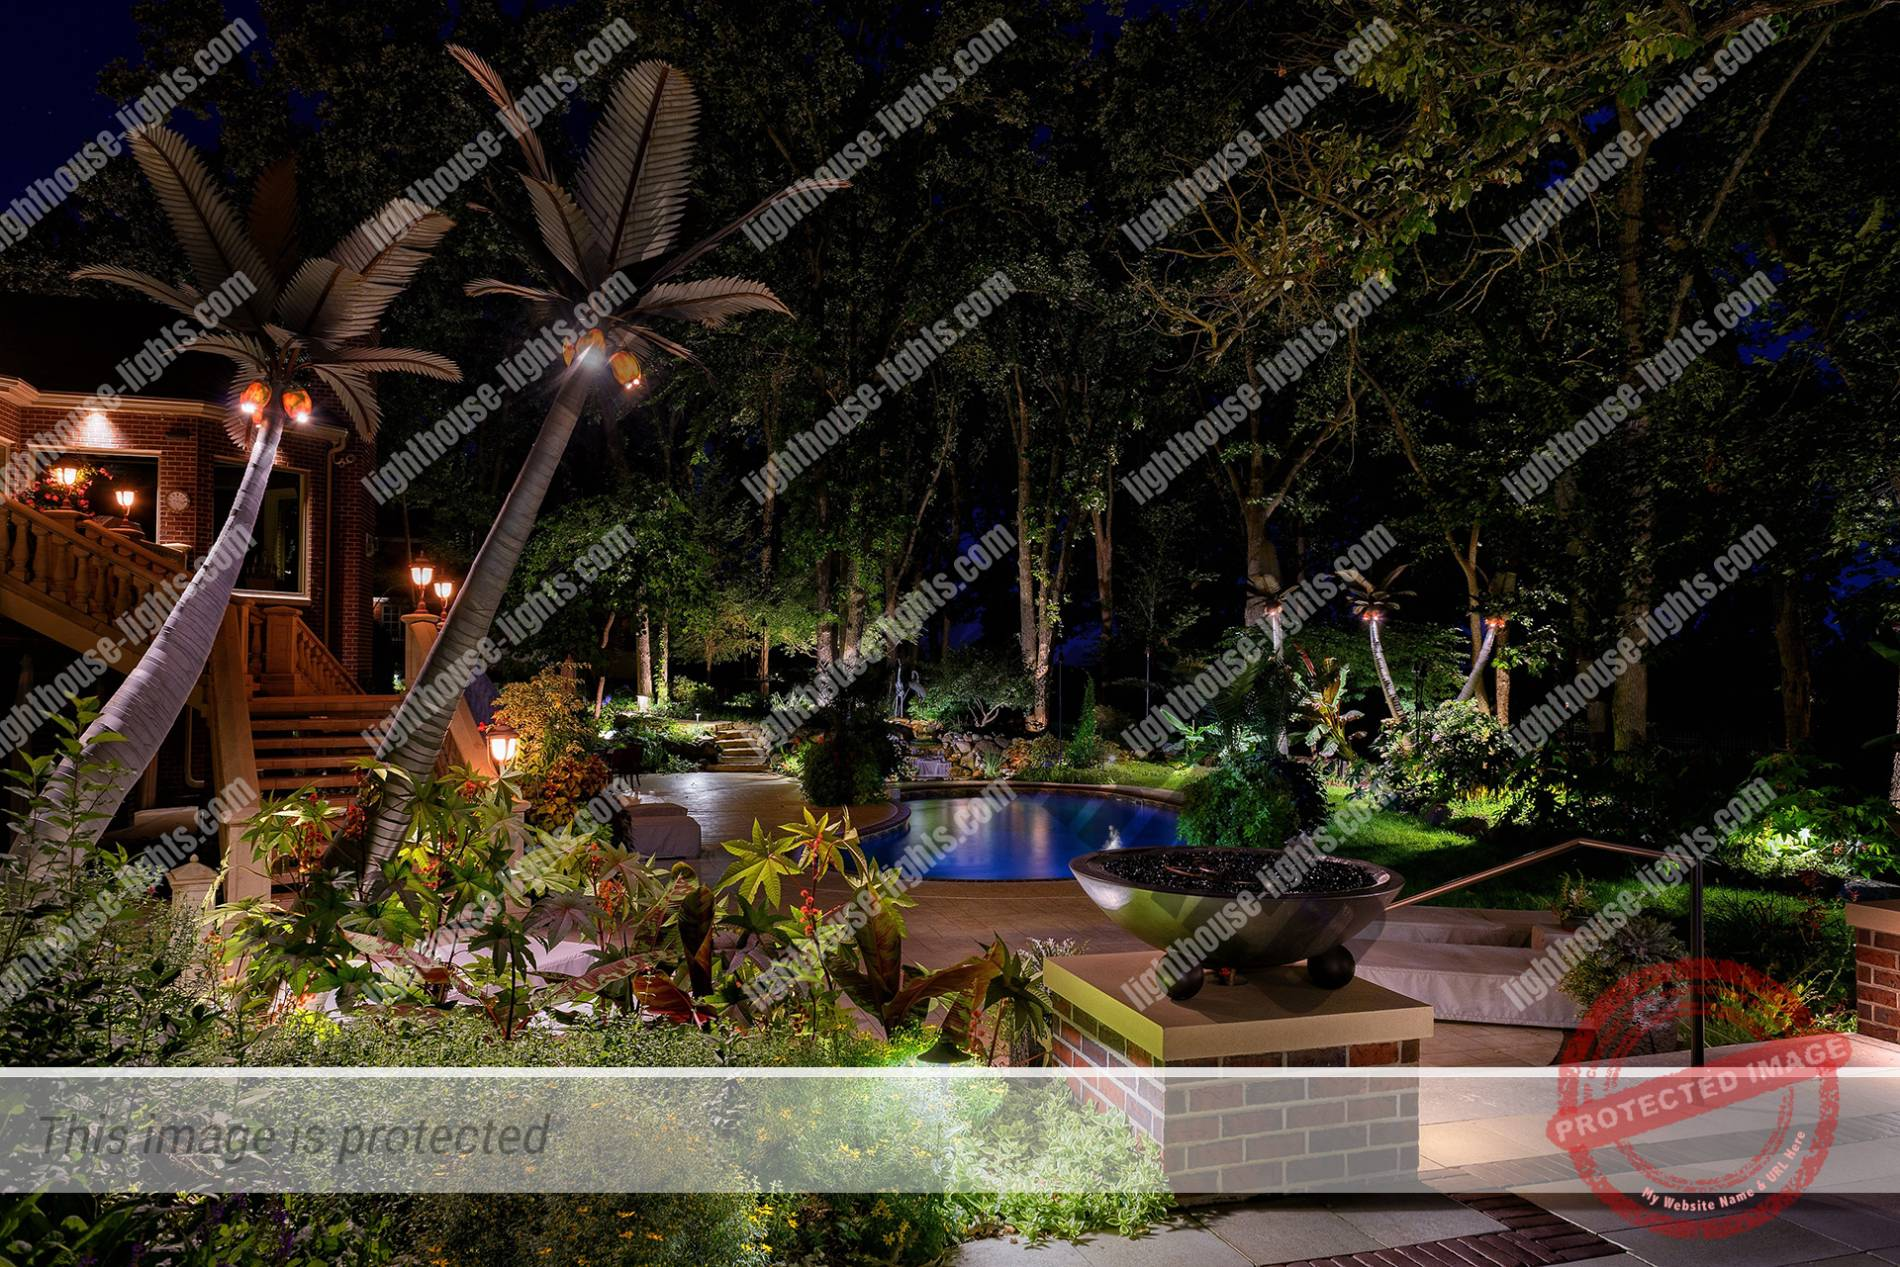 Backyard oasis lighthouse landscape lighting for Pool design hours